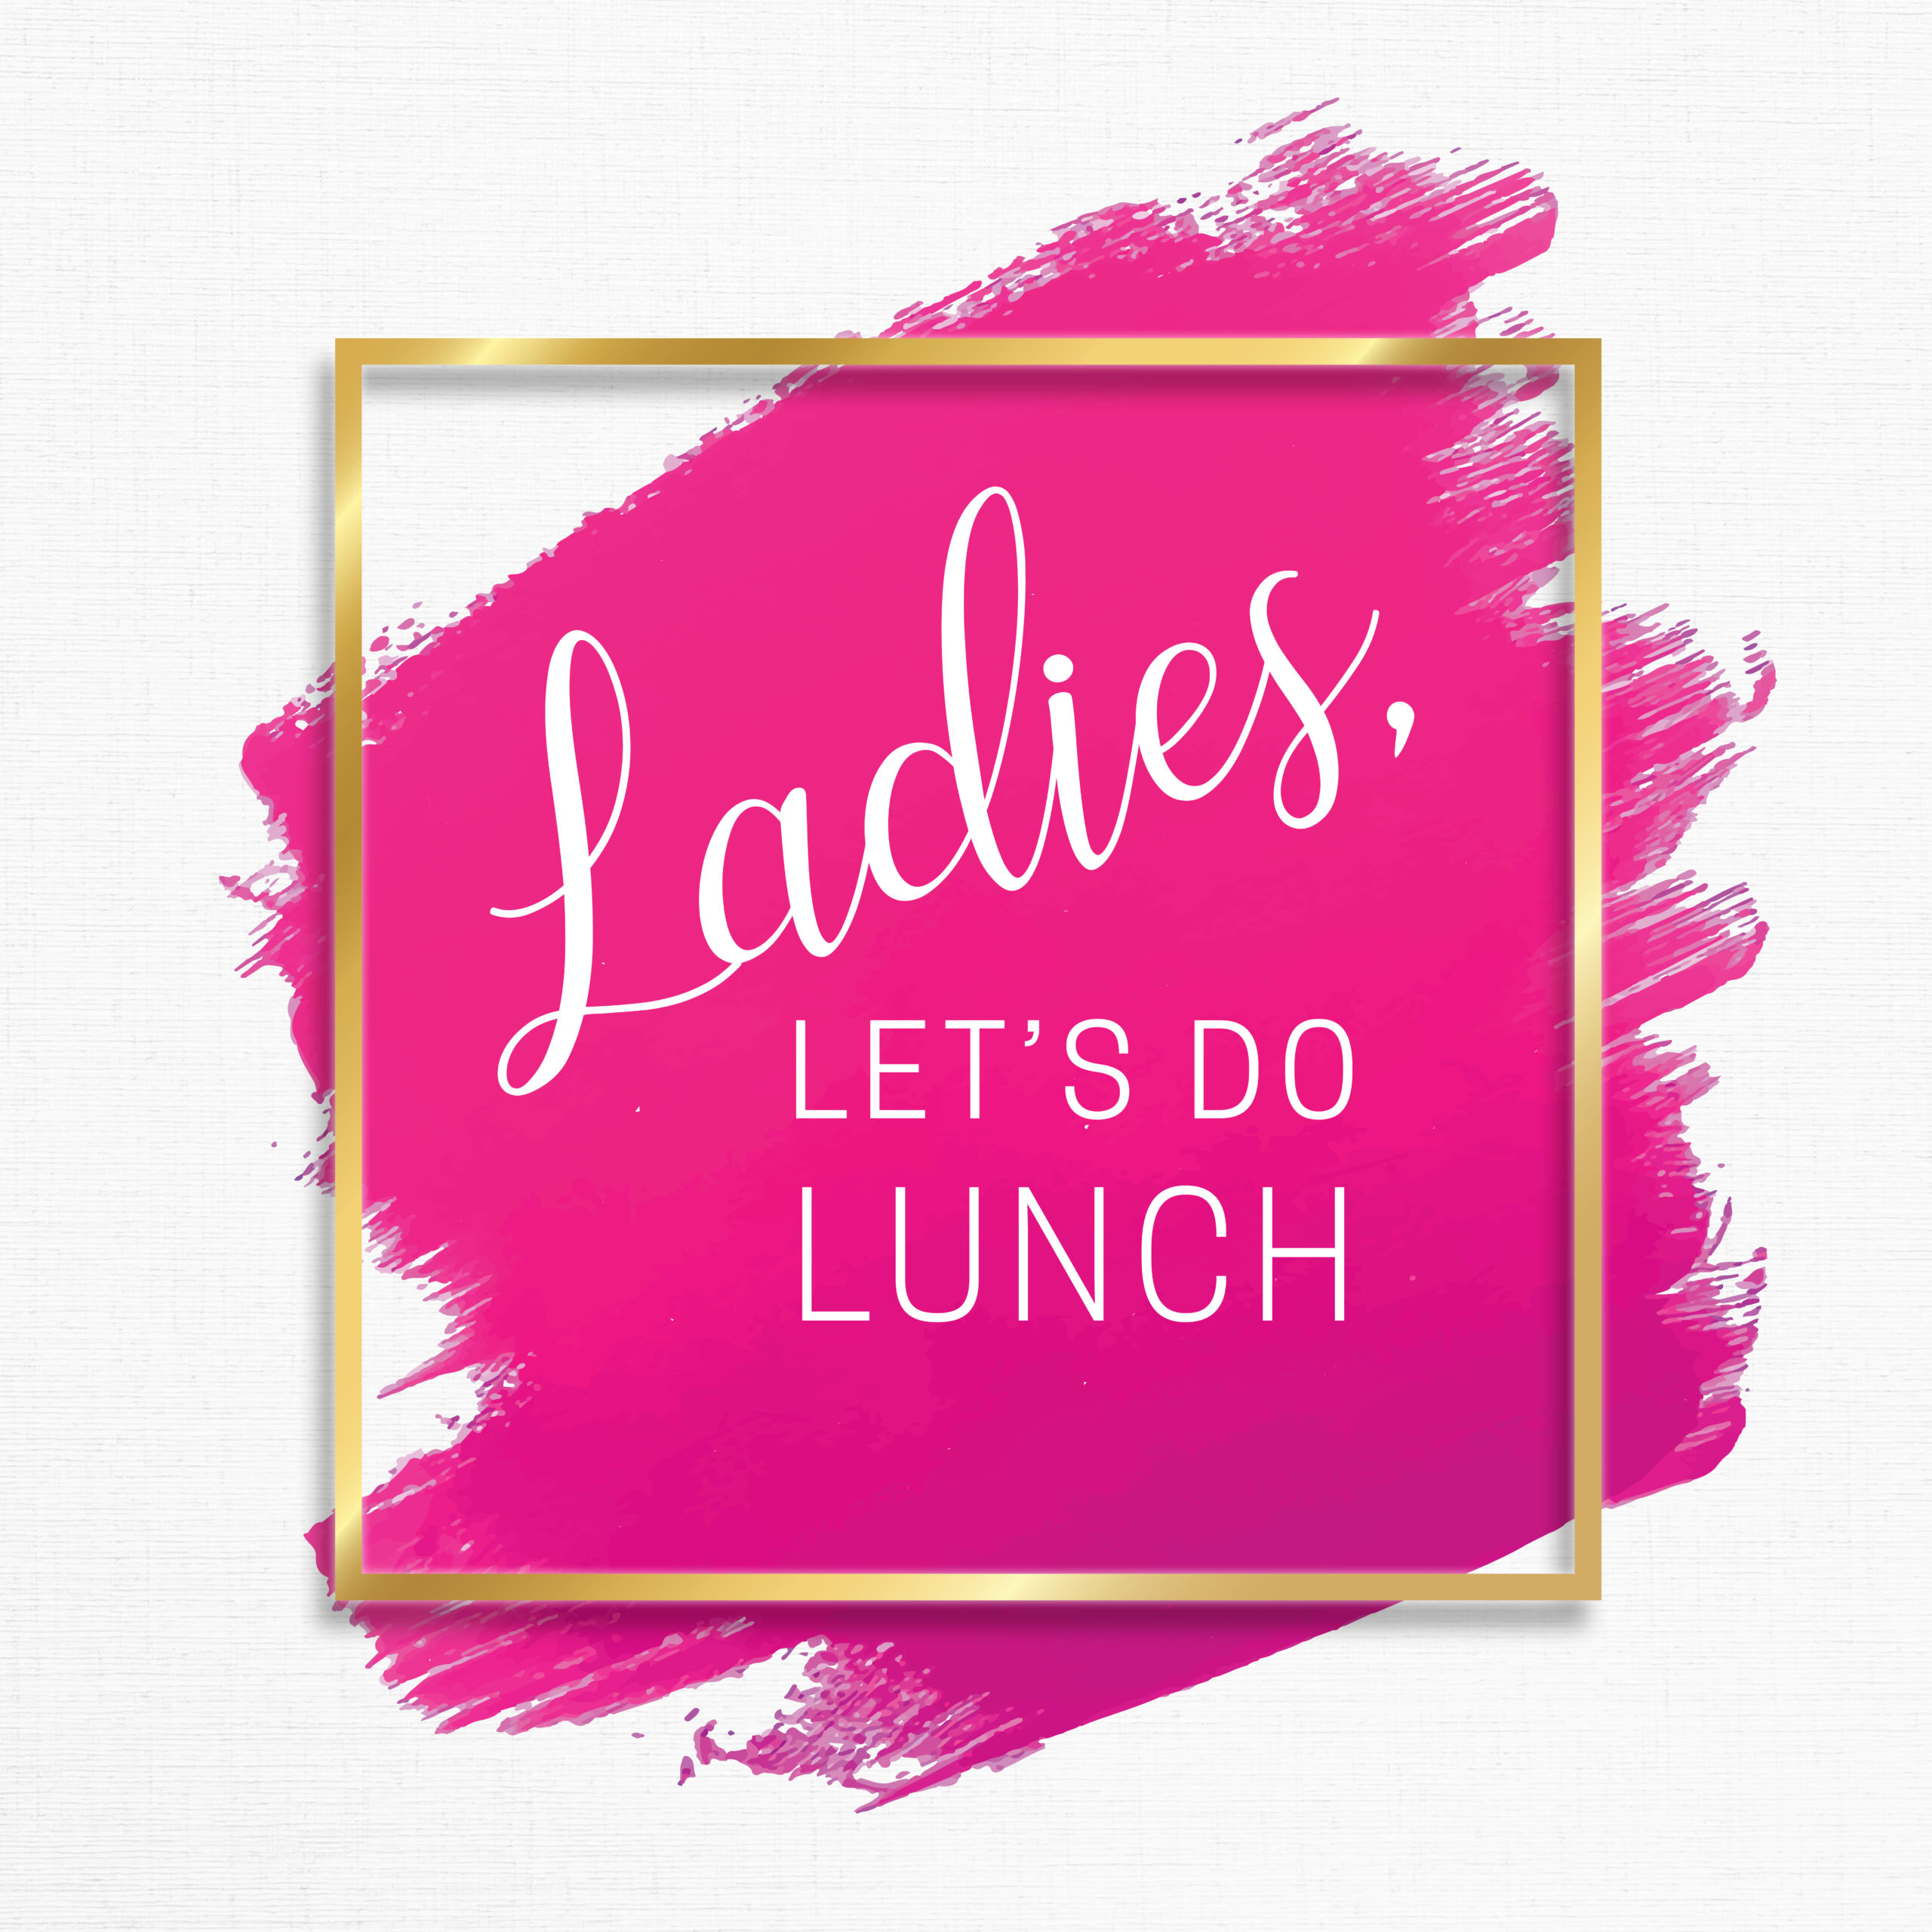 Ladies, Let's Do Lunch